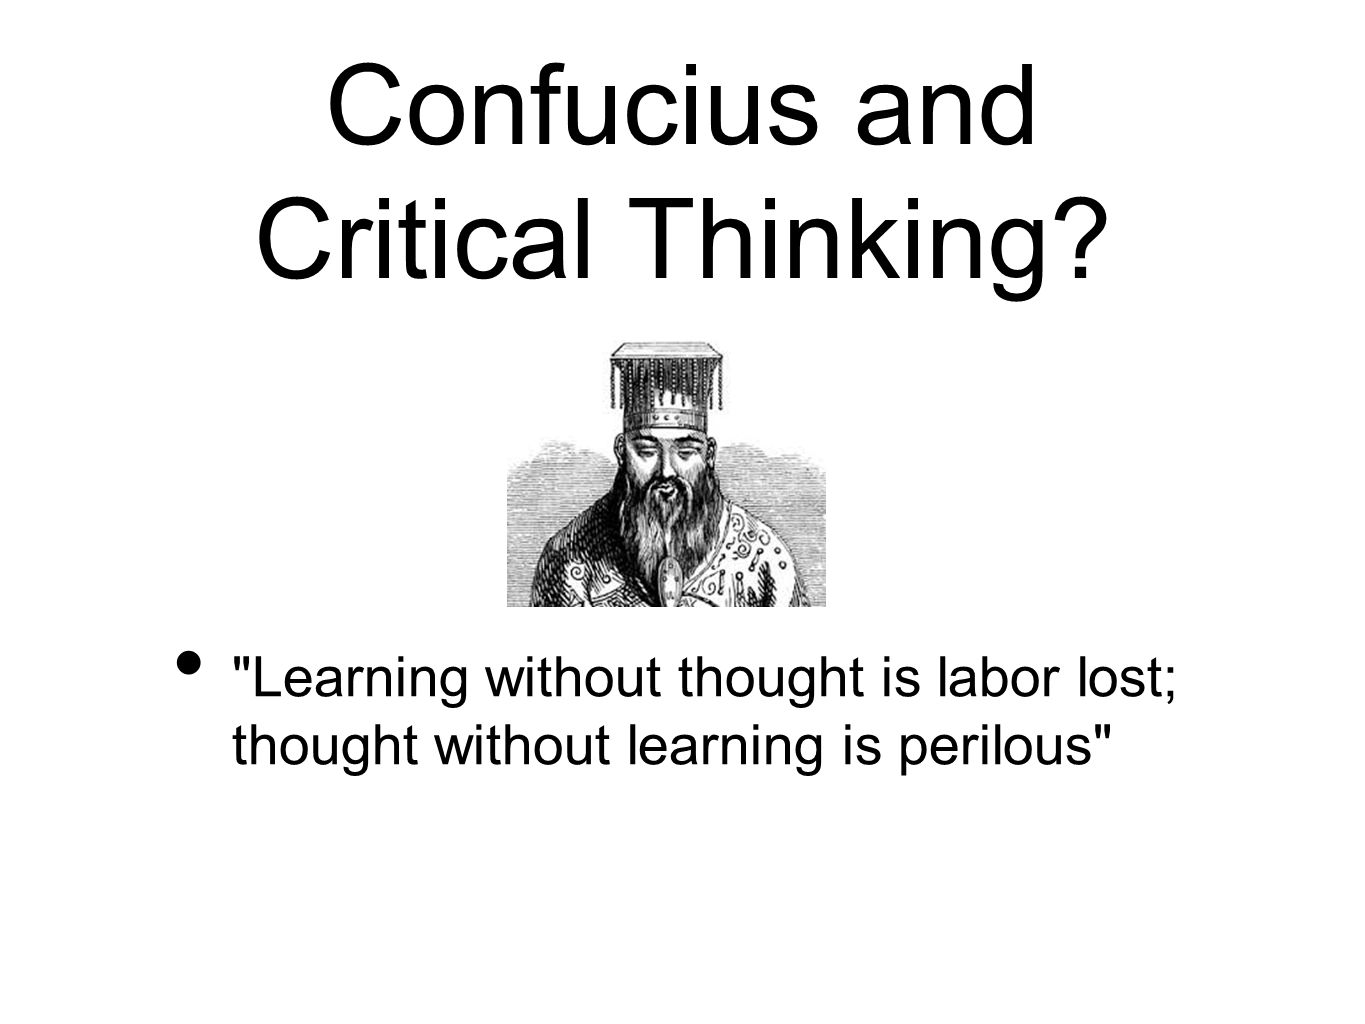 critical thinking video download Play, streaming, watch and download critical thinking video (04:08) , you can convert to mp4, 3gp, m4a for free newdemocracy's research director, lyn carson, was.